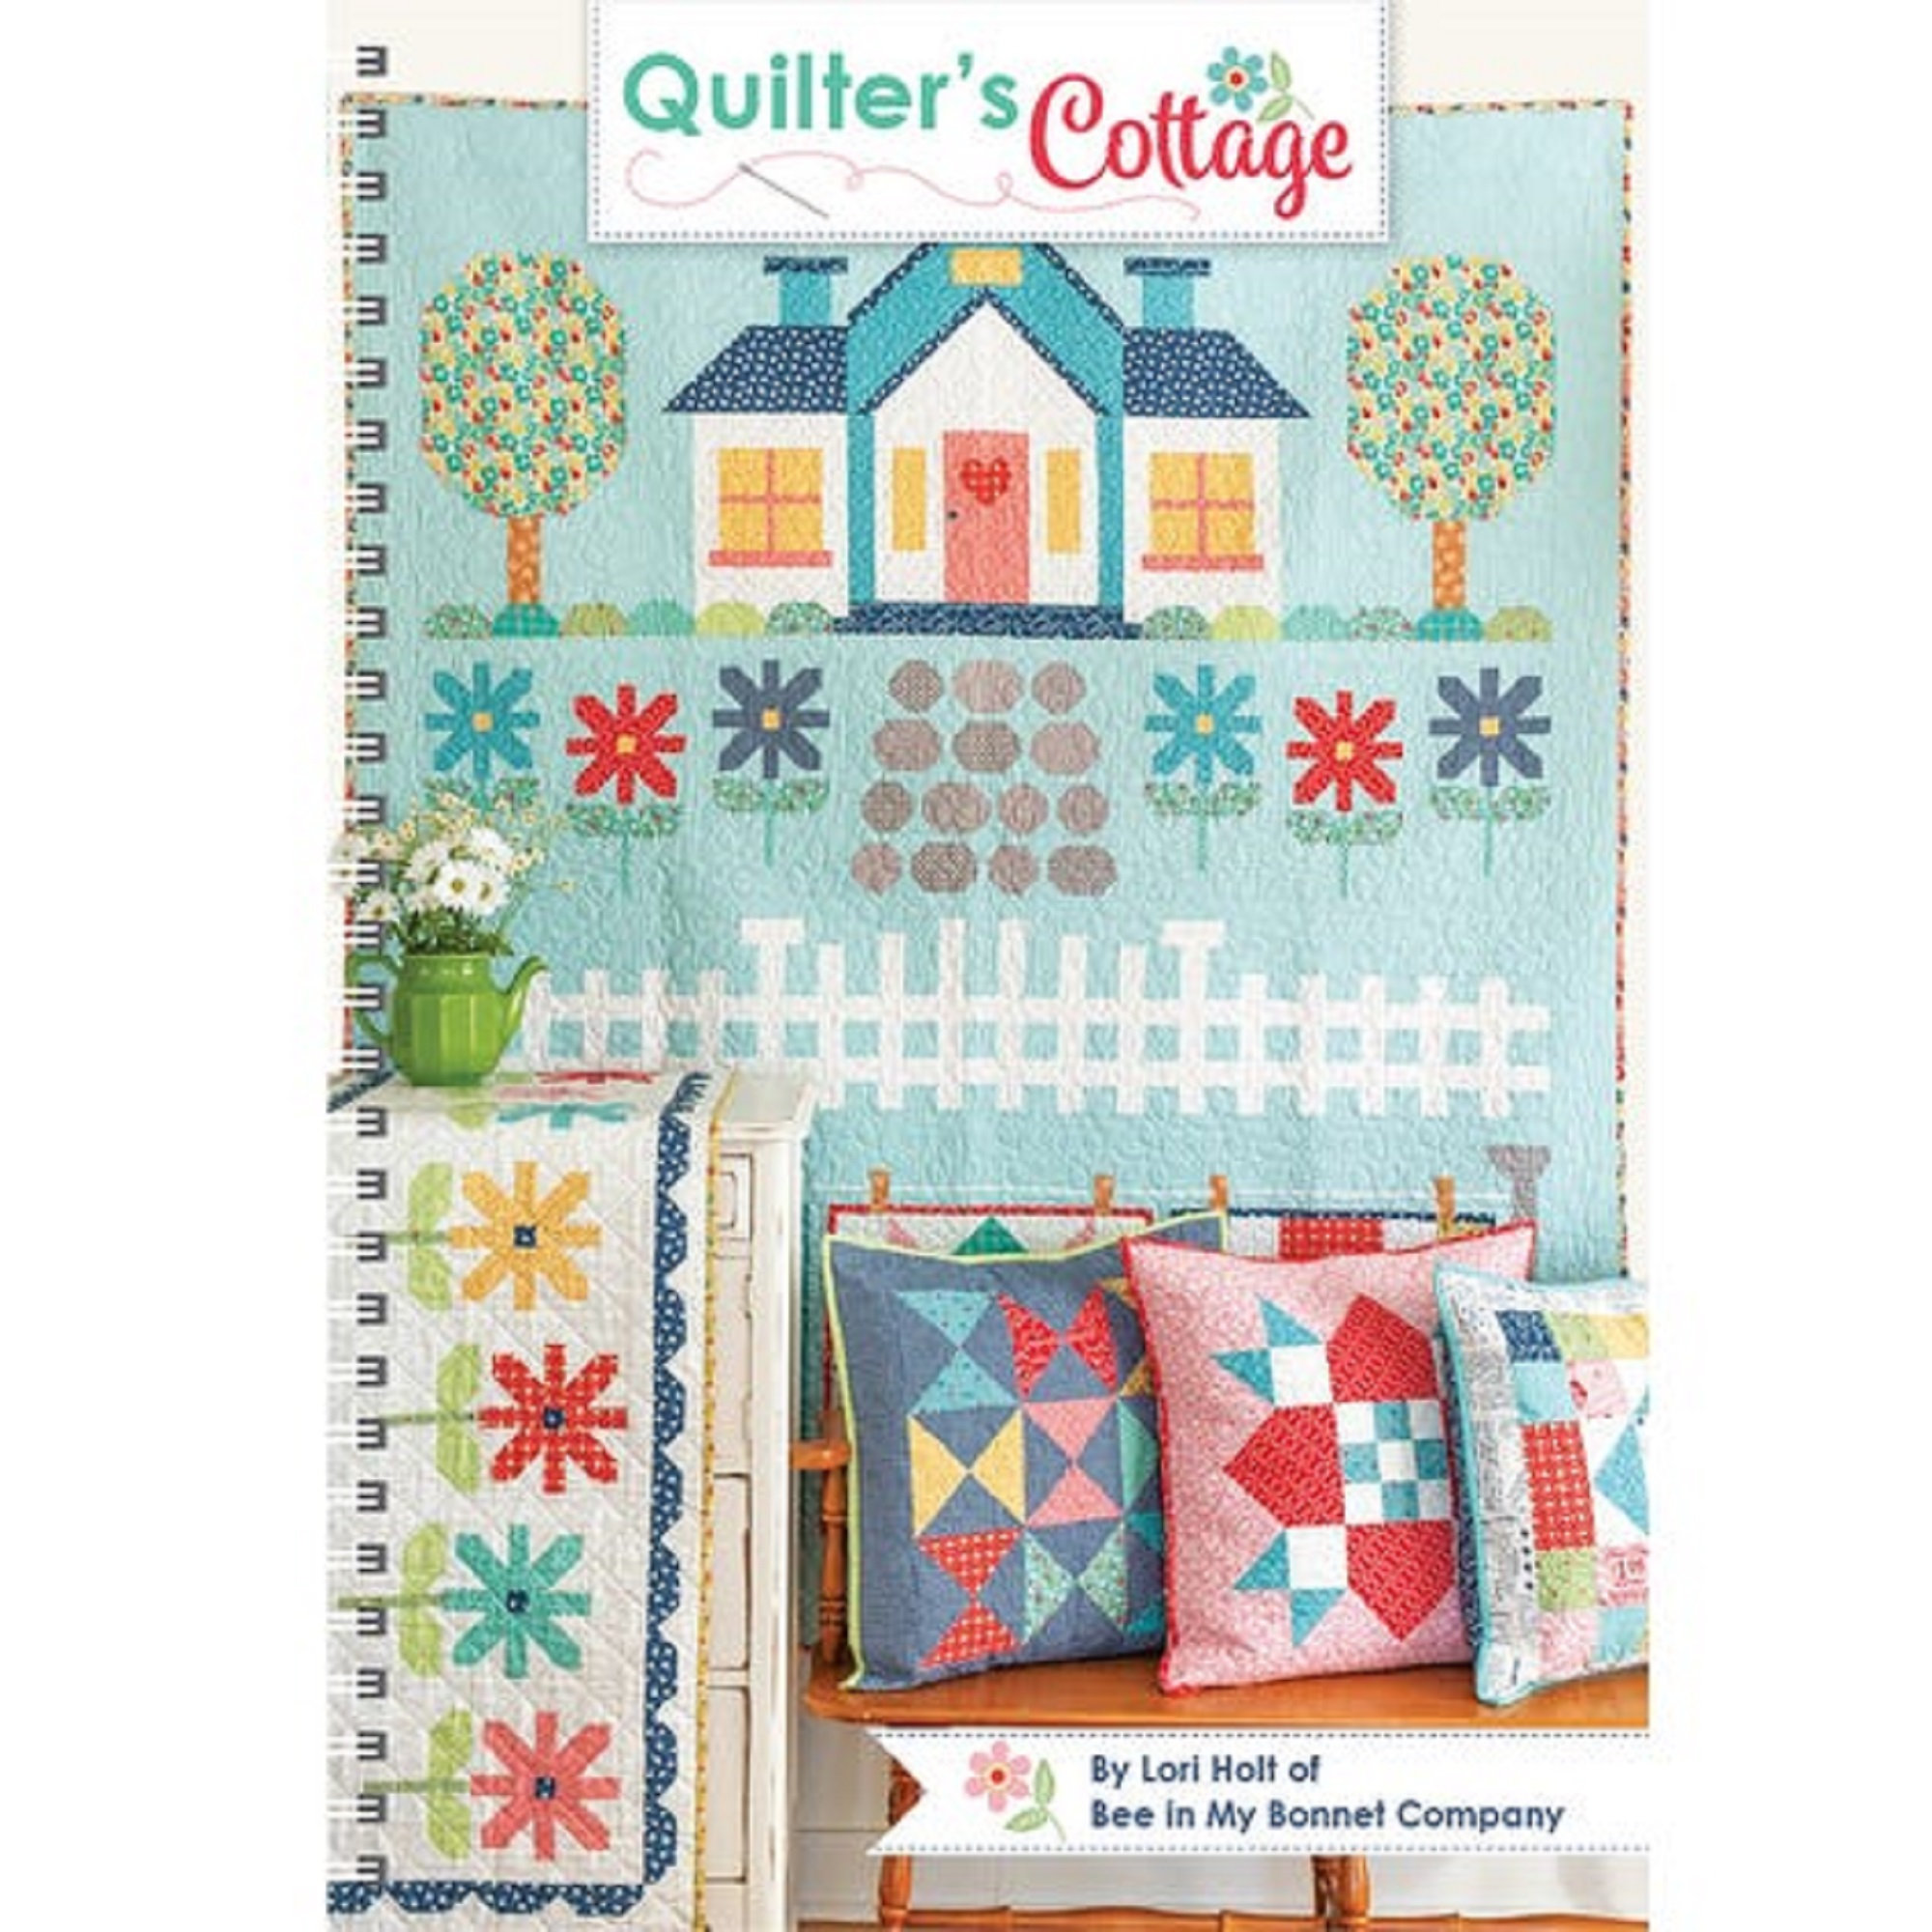 Book - Lori Holt - Quilter's Cottage